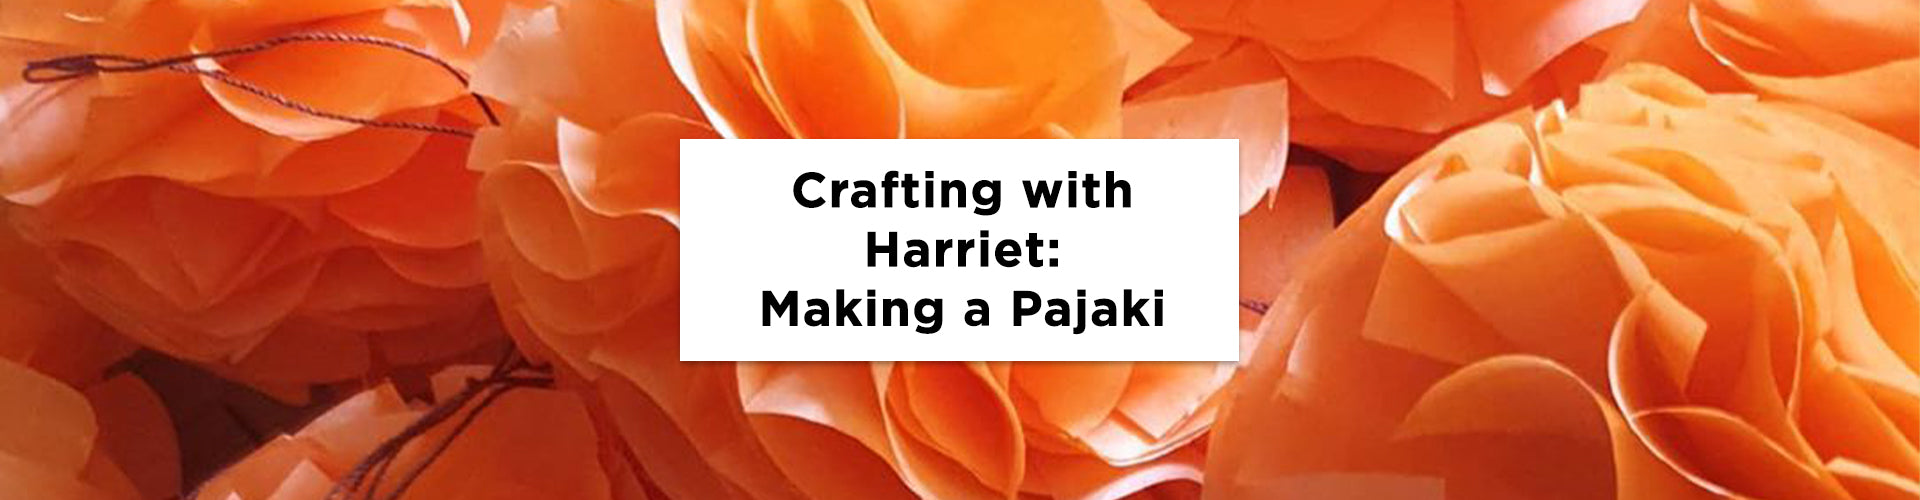 Crafting at Home With Harriet: Making a Pajaki